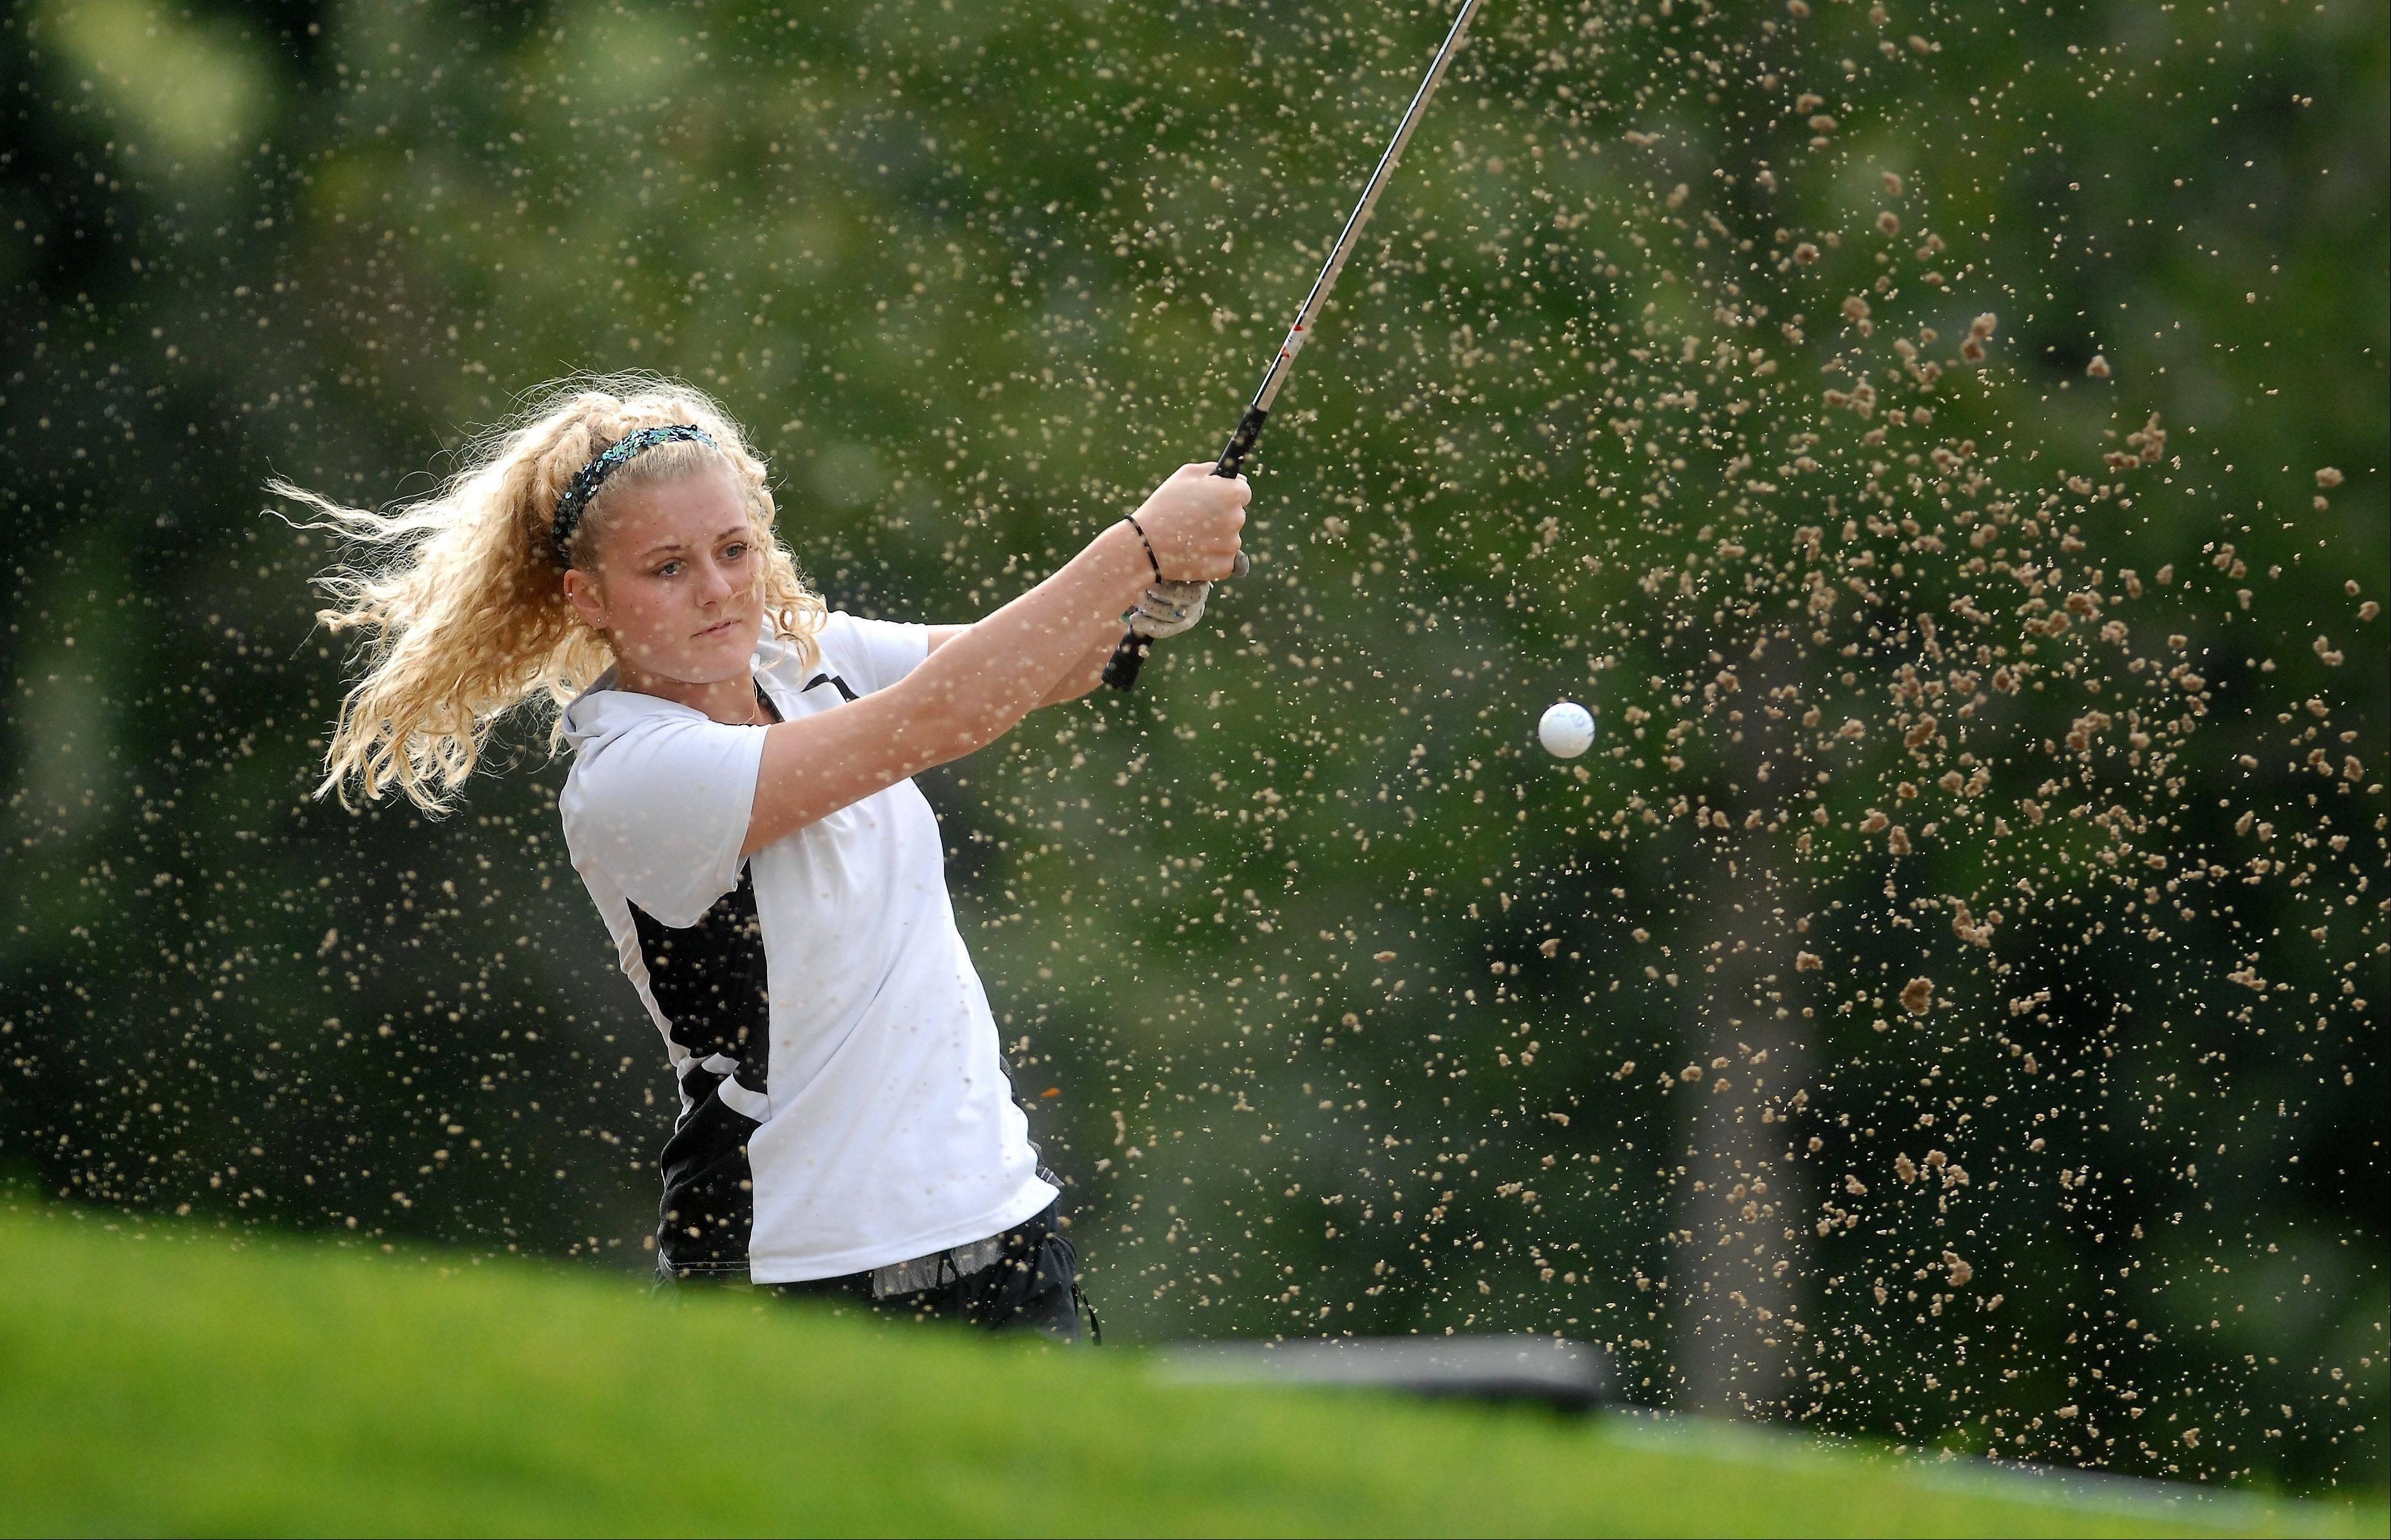 Senior Kaitlynn Woloszyk of Jacobs os one of the top returning girls golfers in the Fox Valley this season.